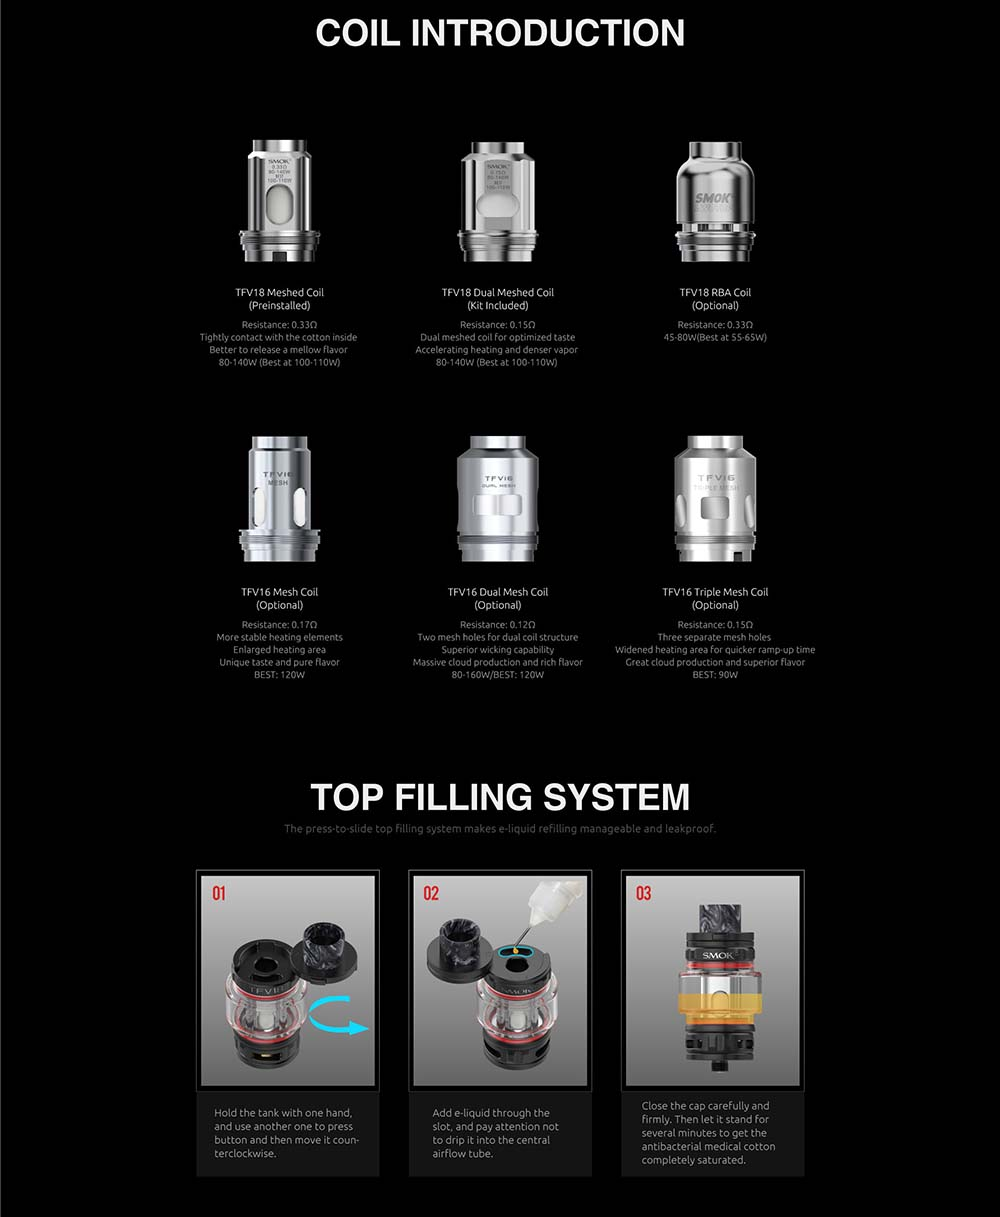 TFV18 Coils Available And How To Fill